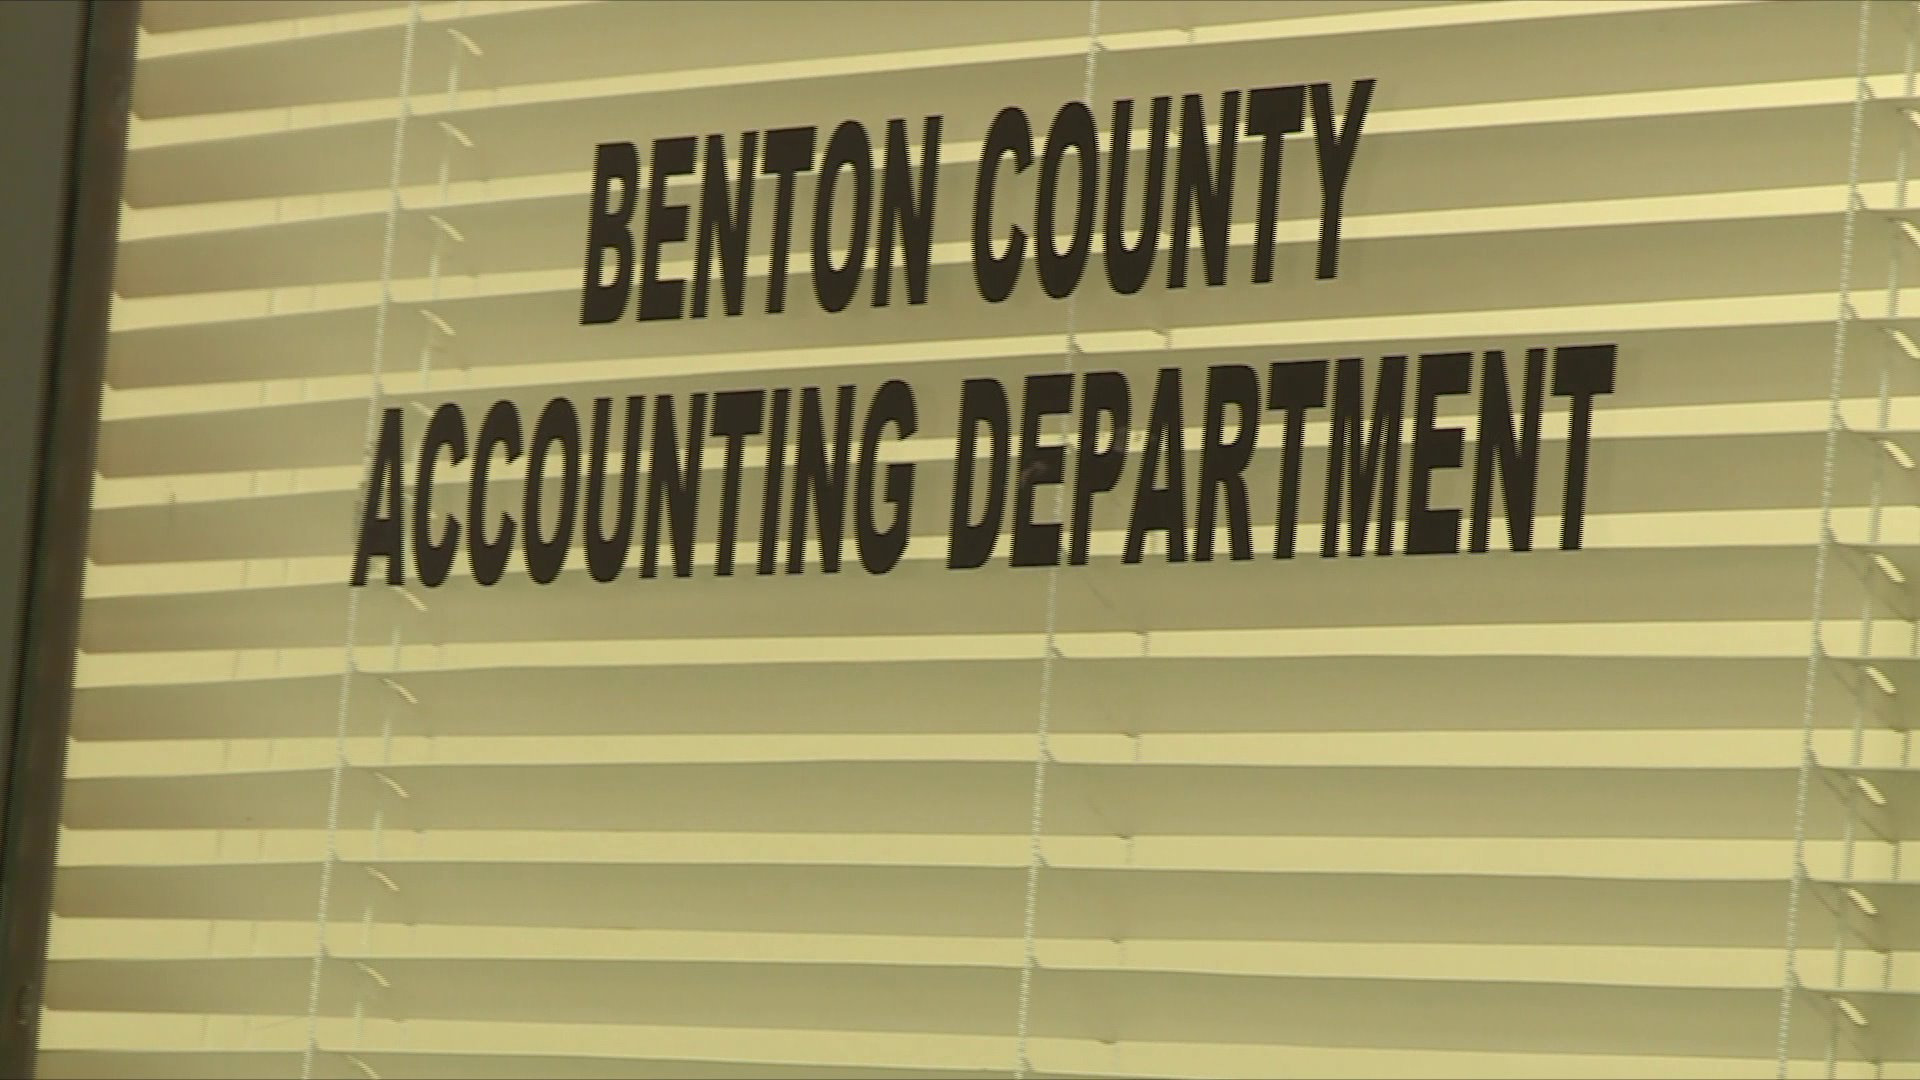 benton-county-accounting-department